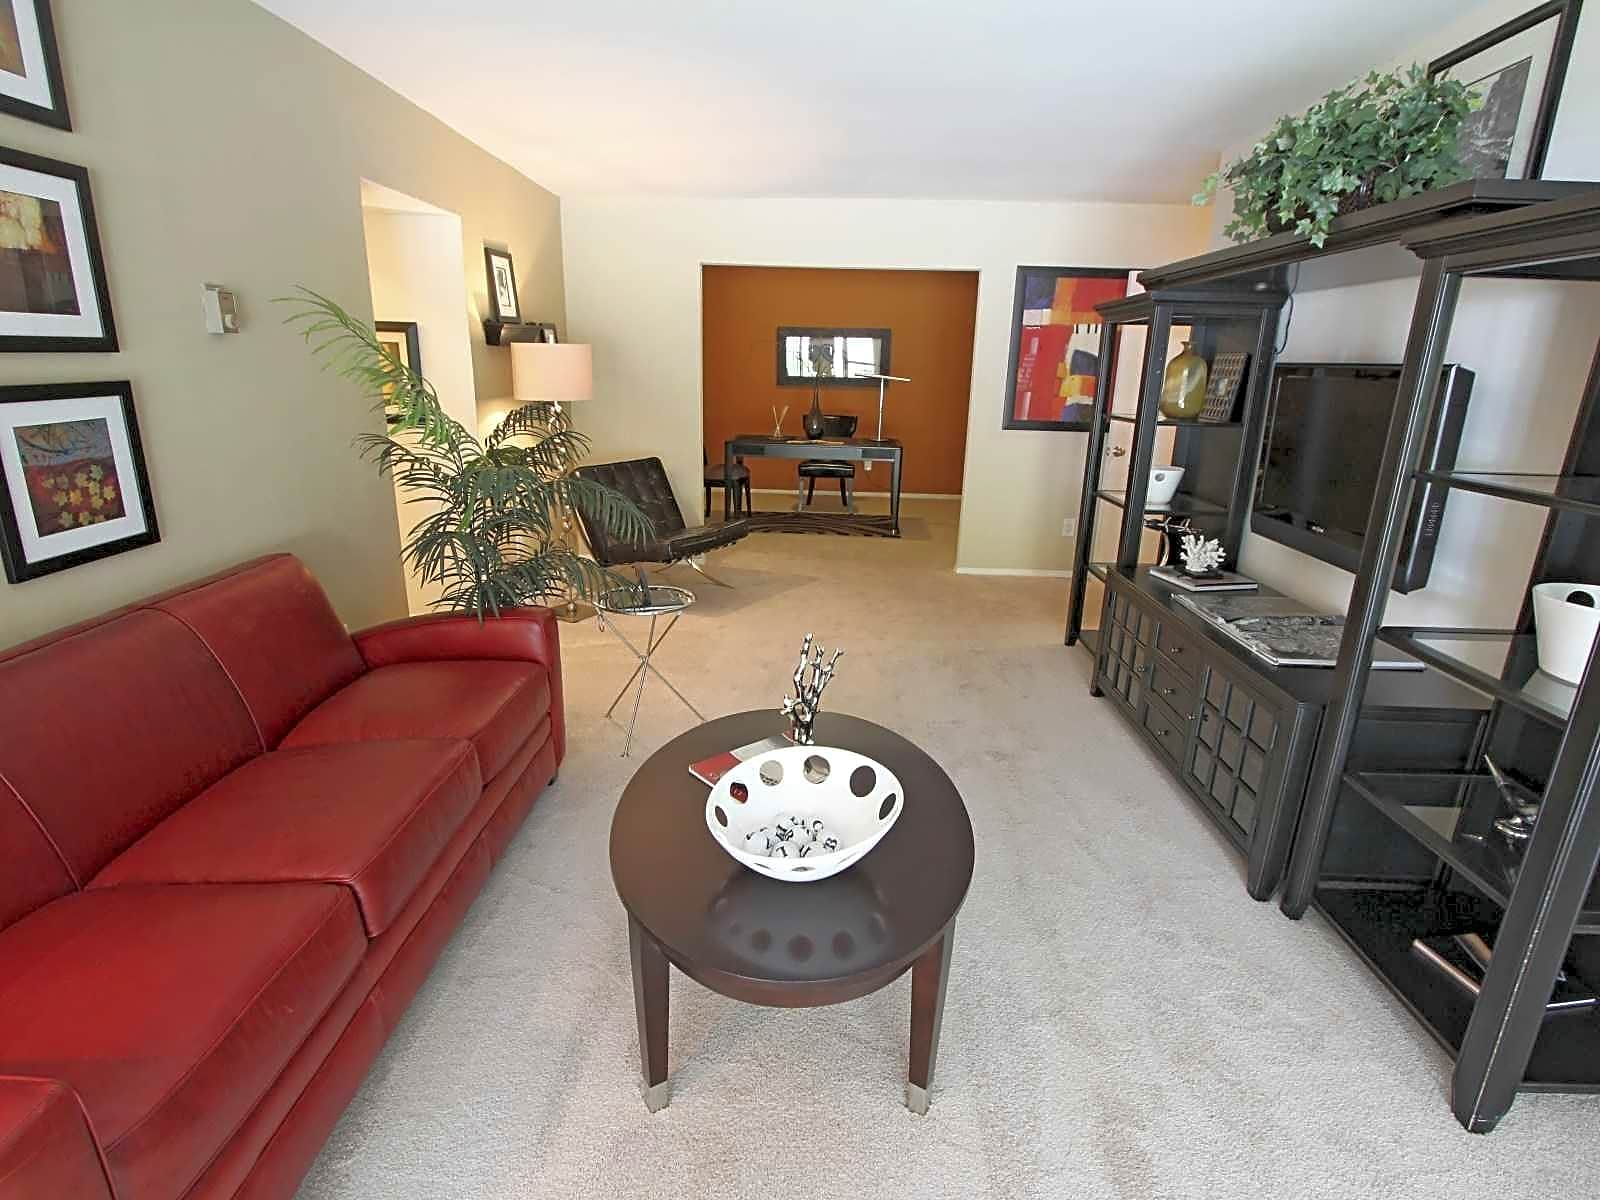 Photo: Annandale Apartment for Rent - $1475.00 / month; 2 Bd & 1 Ba